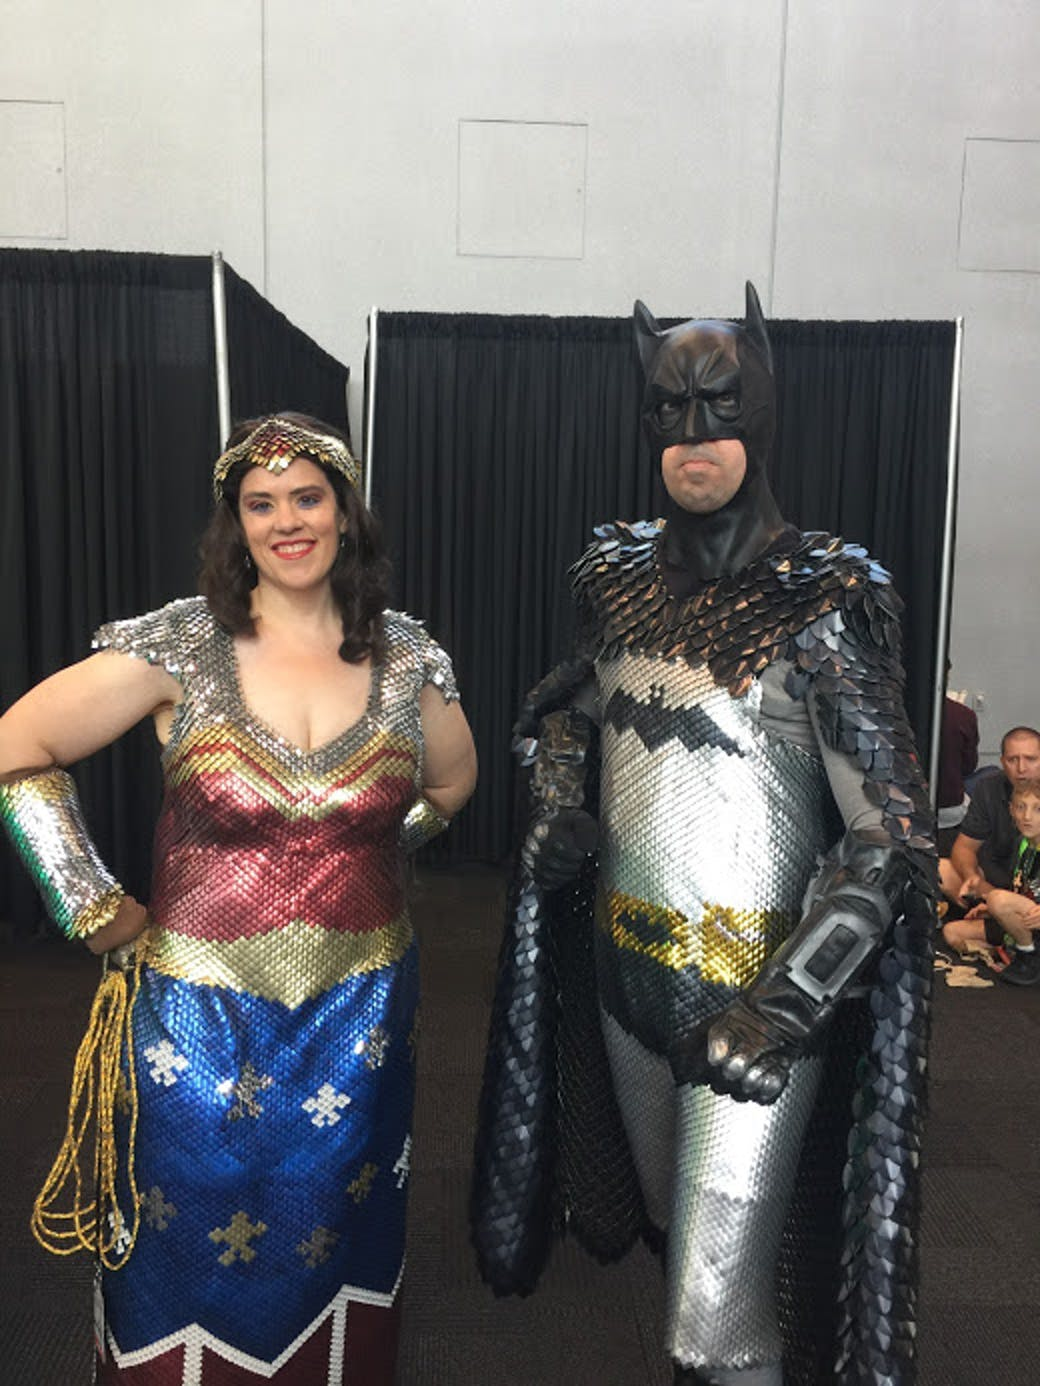 nycc cosplay batman wonder woman